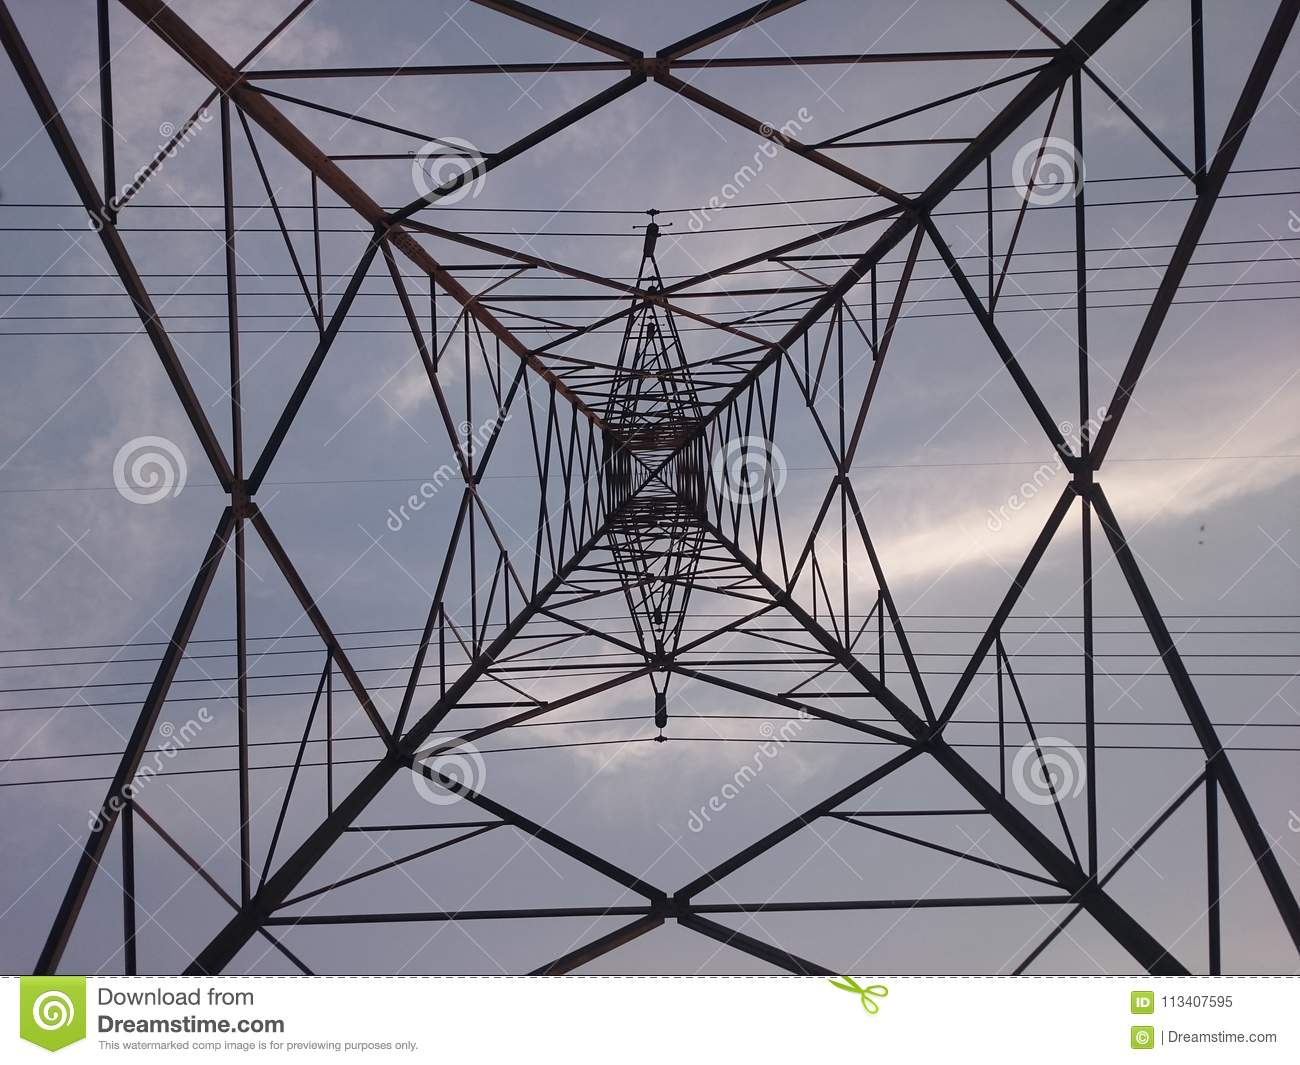 Electricity Tower stock image  Image of android, smartphone - 113407595